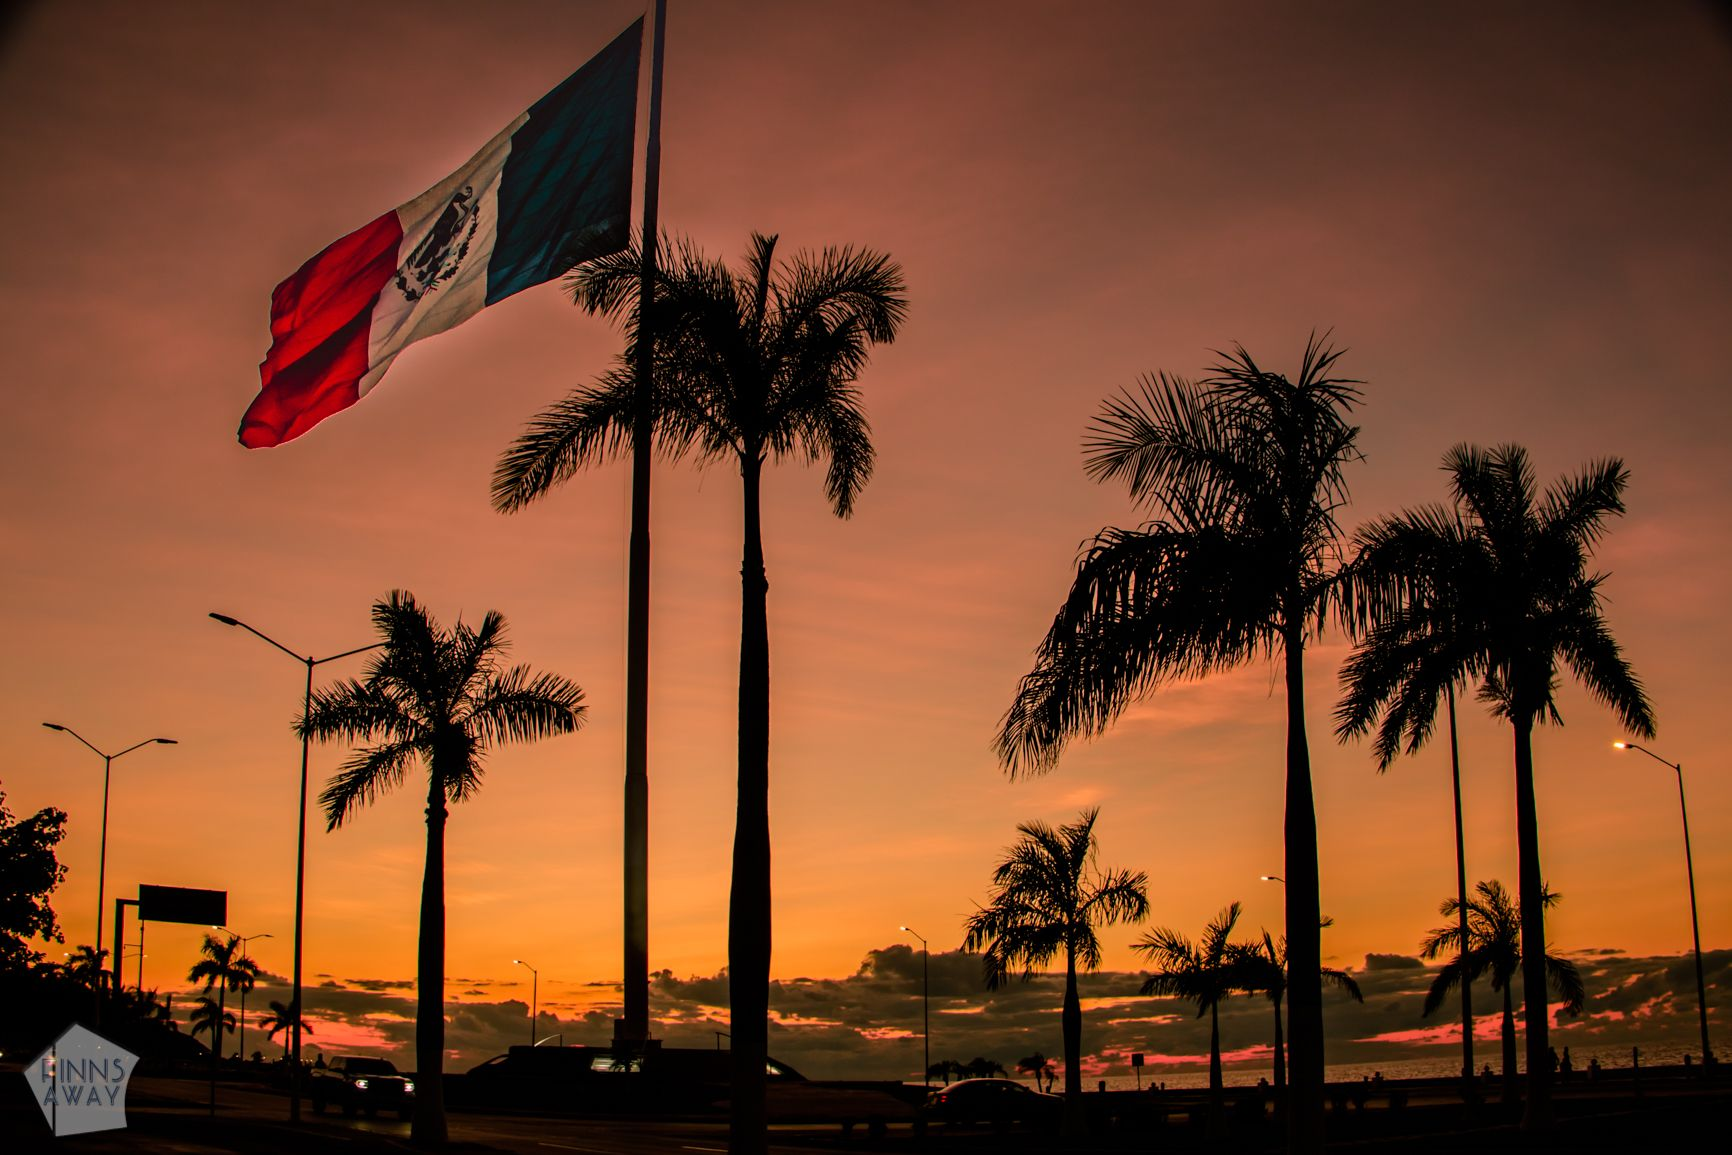 17 Best images about CAMPECHE MEXICO on Pinterest ...   Campeche City Monuments